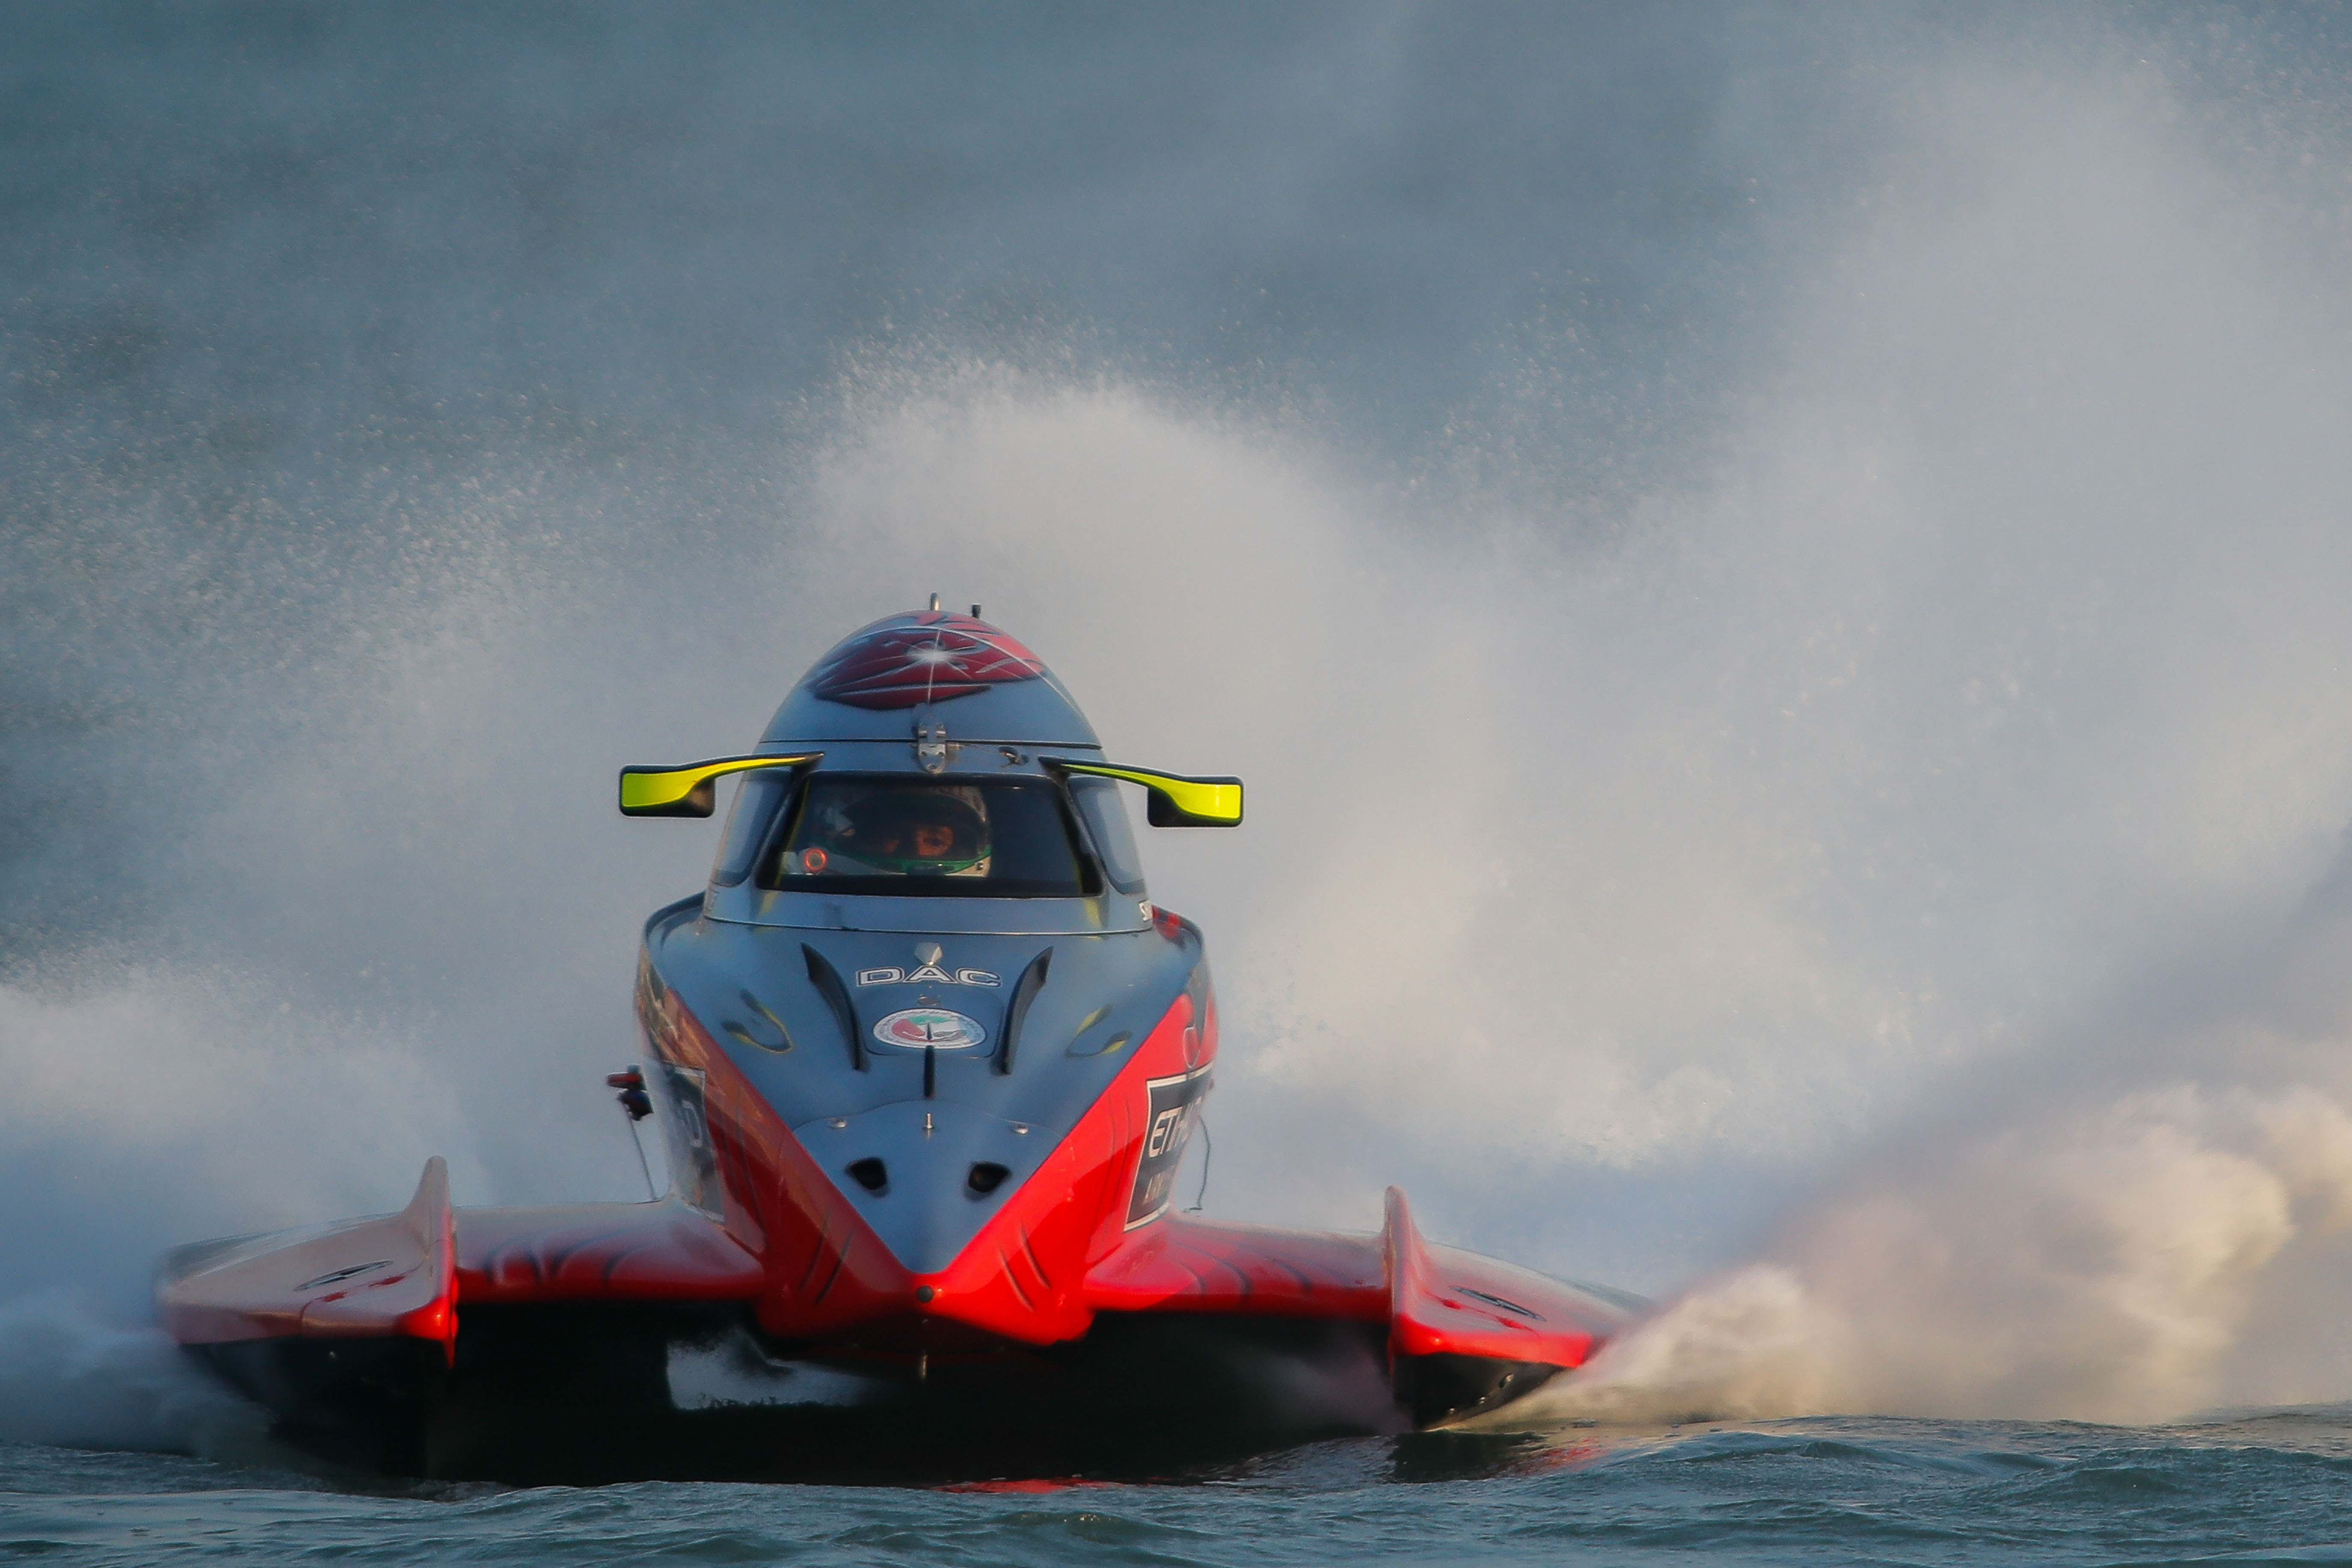 F1H2O UIM World Championship: SHAUN TORRENTE WINS CENSTAR GRAND PRIX OF CHINA AND REGAINS THE LEAD IN THE TITLE